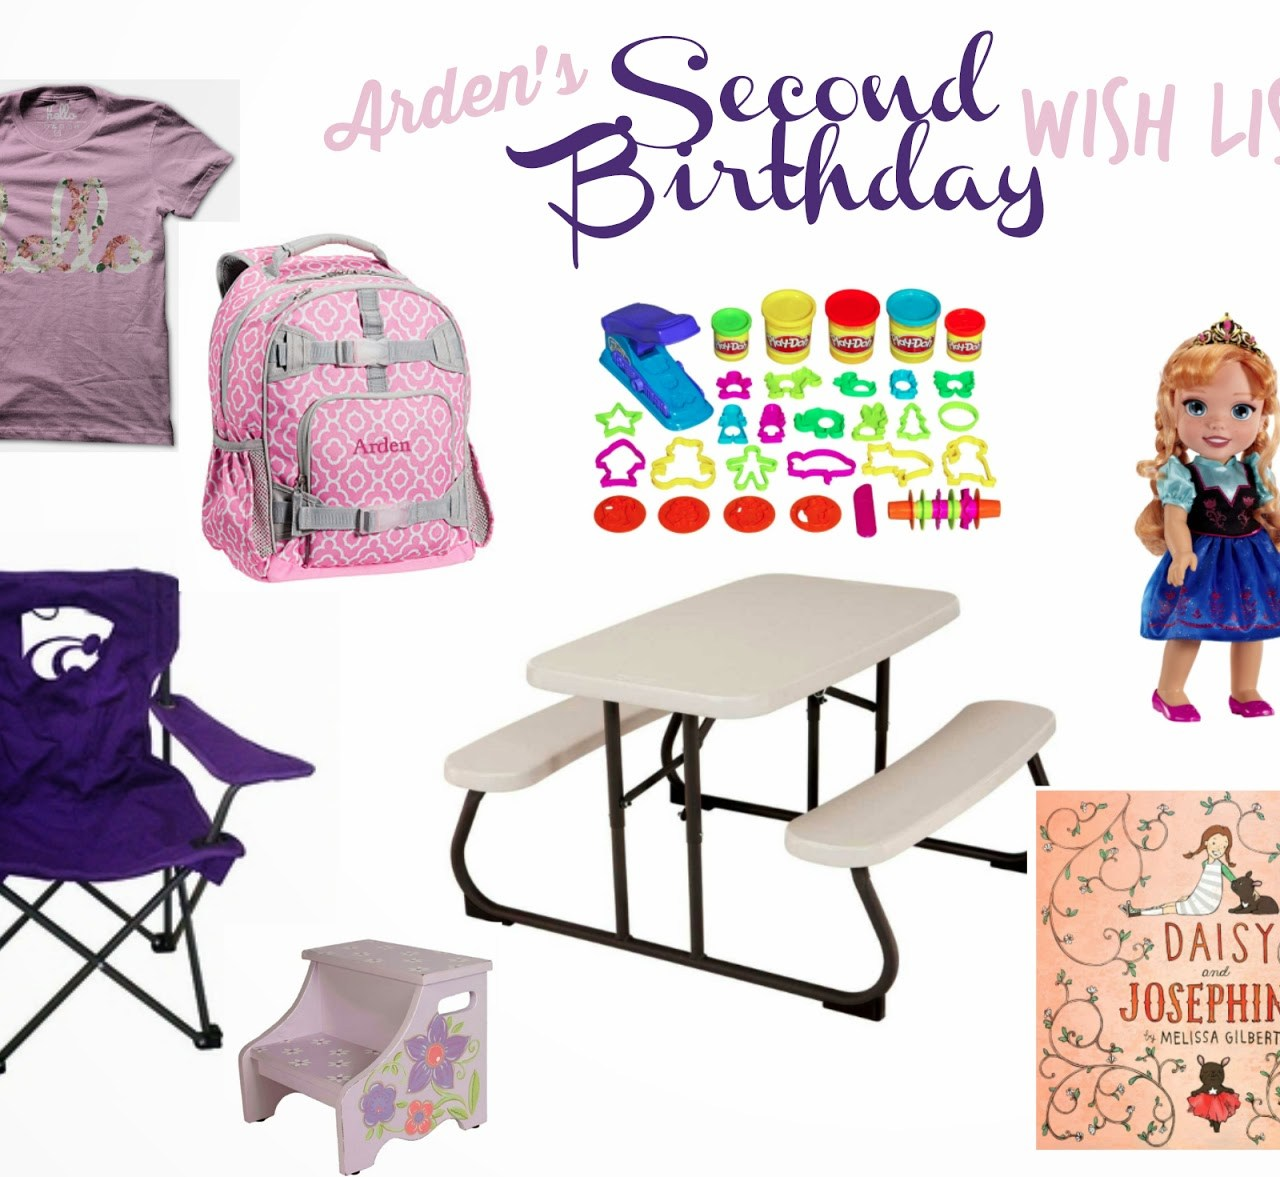 2nd Birthday WISH List